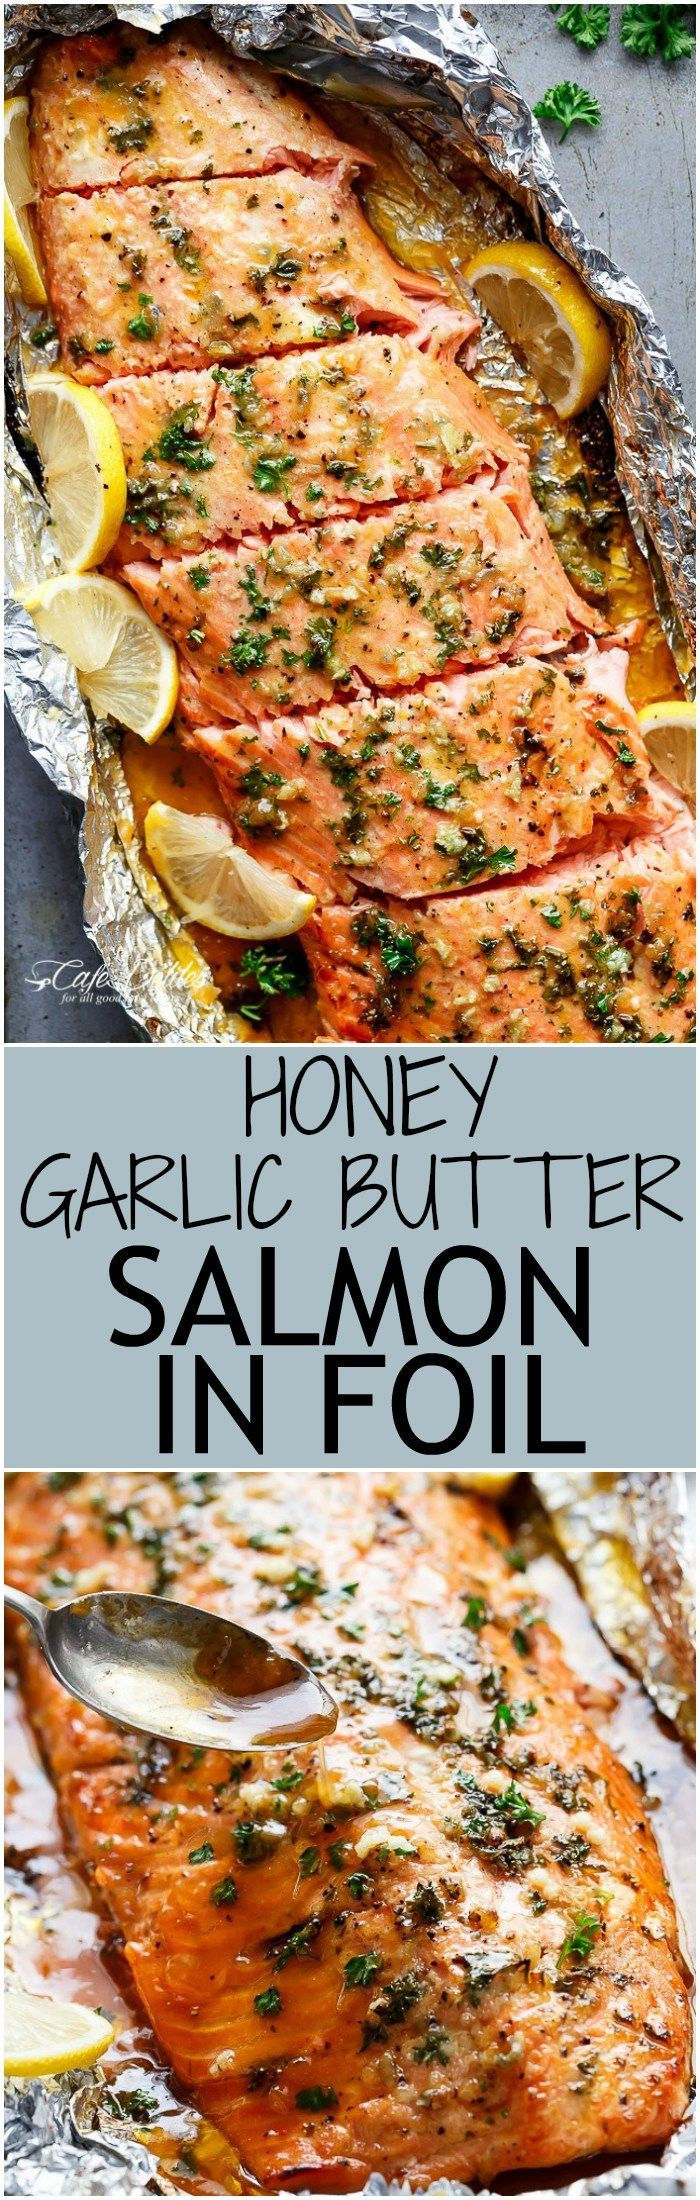 Honey Garlic Butter Salmon In Foil in under 20 minutes, then broiled (or grilled...,  #broiled #Butter #Foil #freshseafood #Garlic #Grilled #honey #minutes #Salmon #seafoodbake #seafooddishes #seafoodindonesia